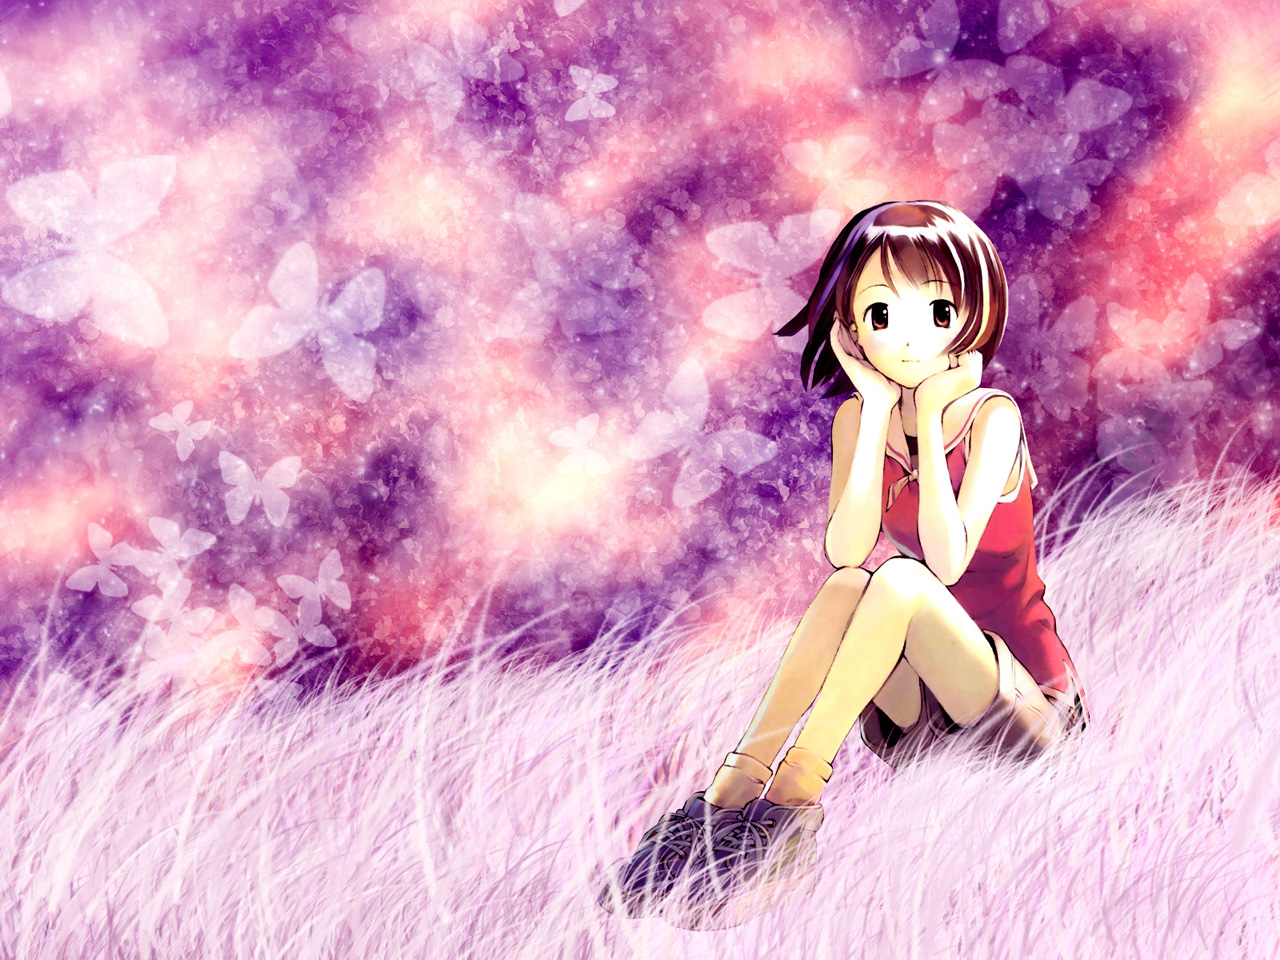 Cute Anime Girl computer desktop wallpapers pictures images 1280x960